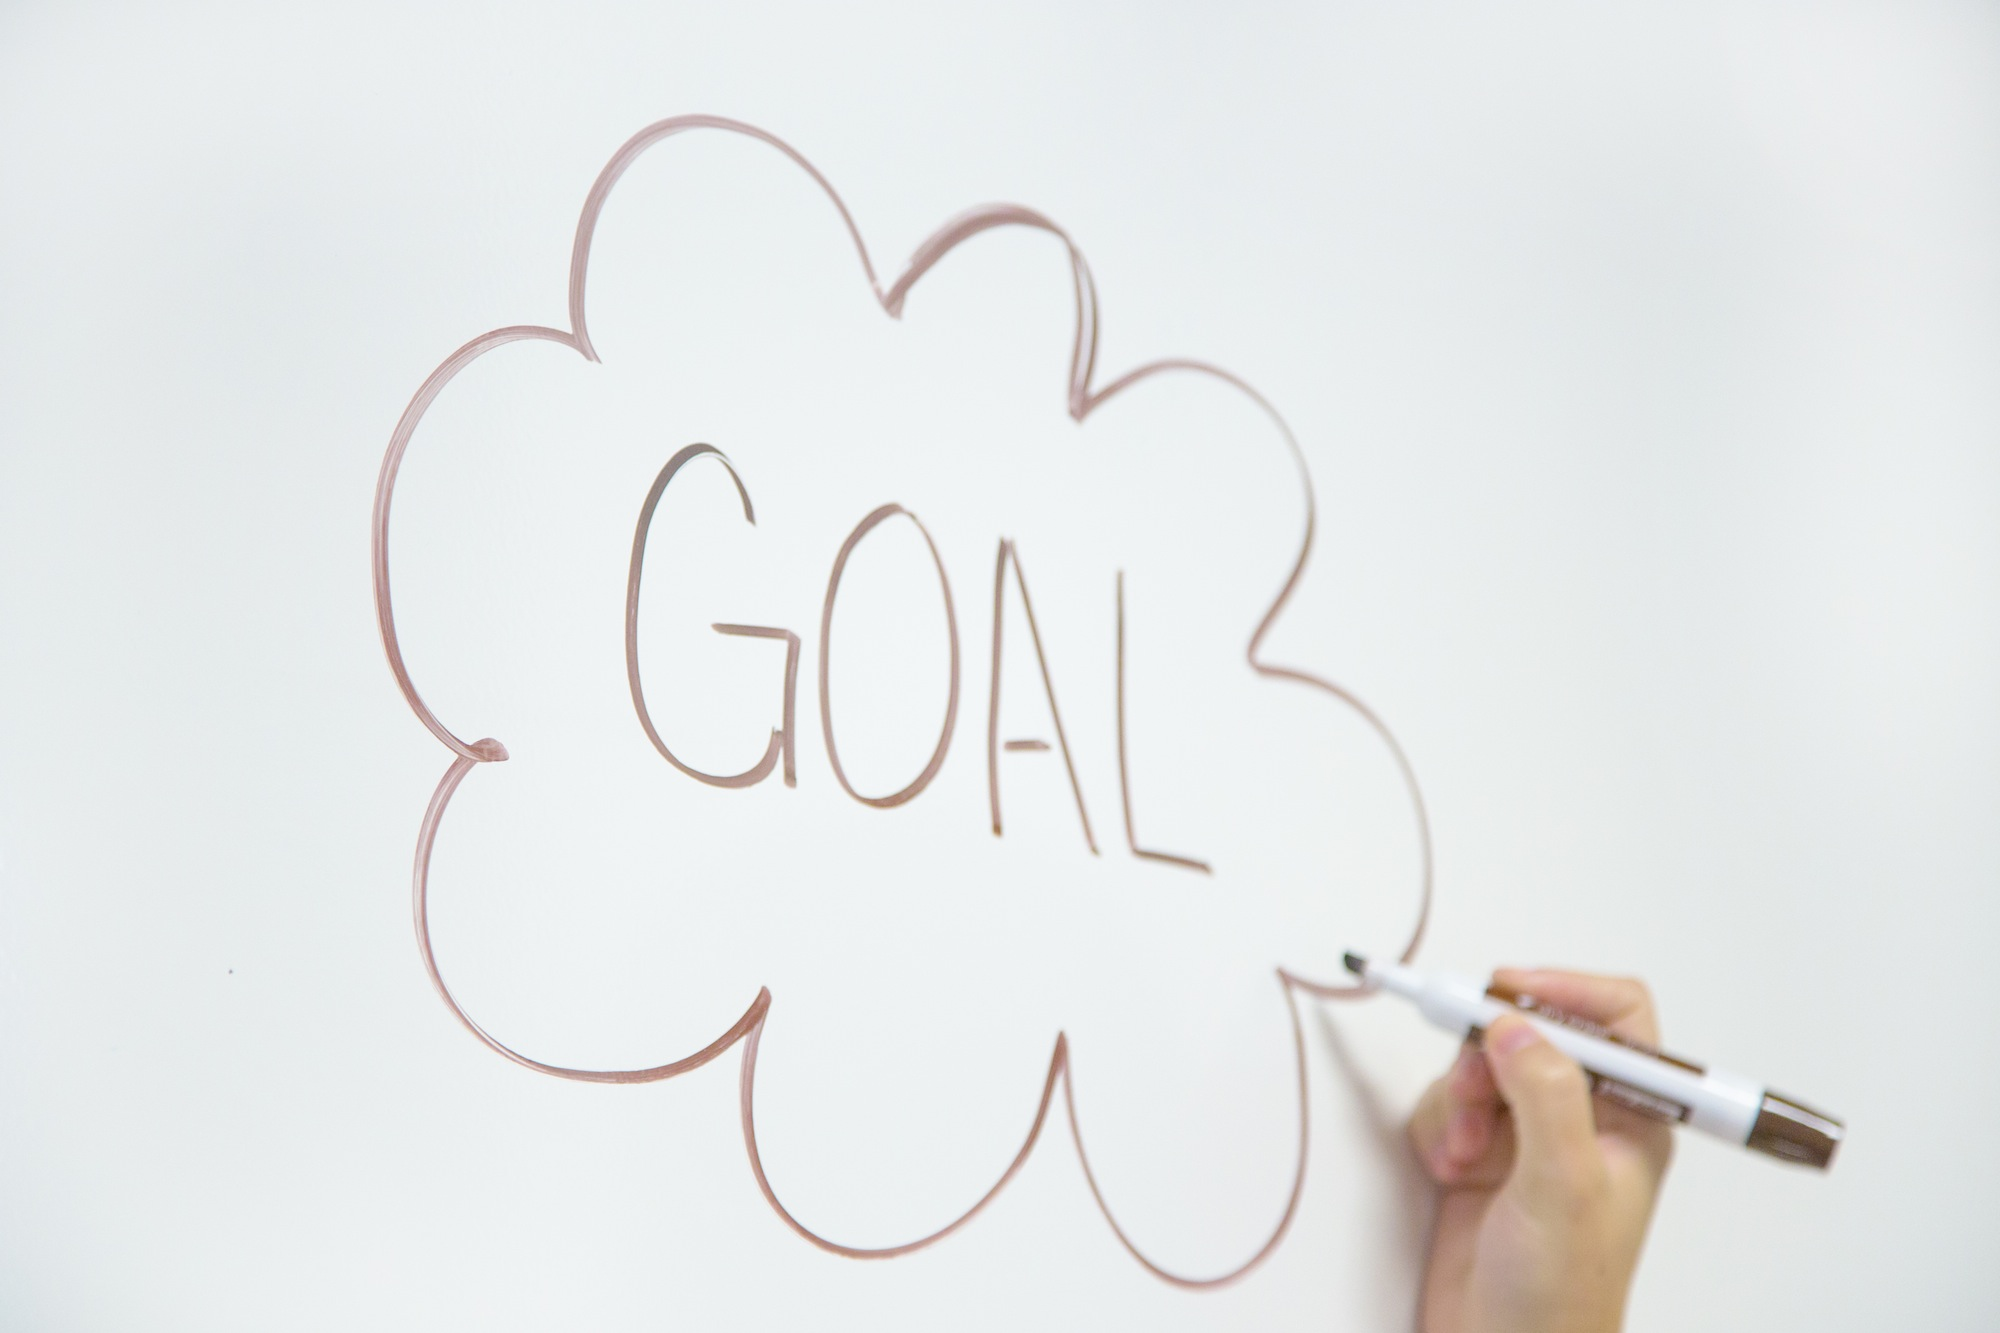 How to create realistic and attainable goal setting systems that work